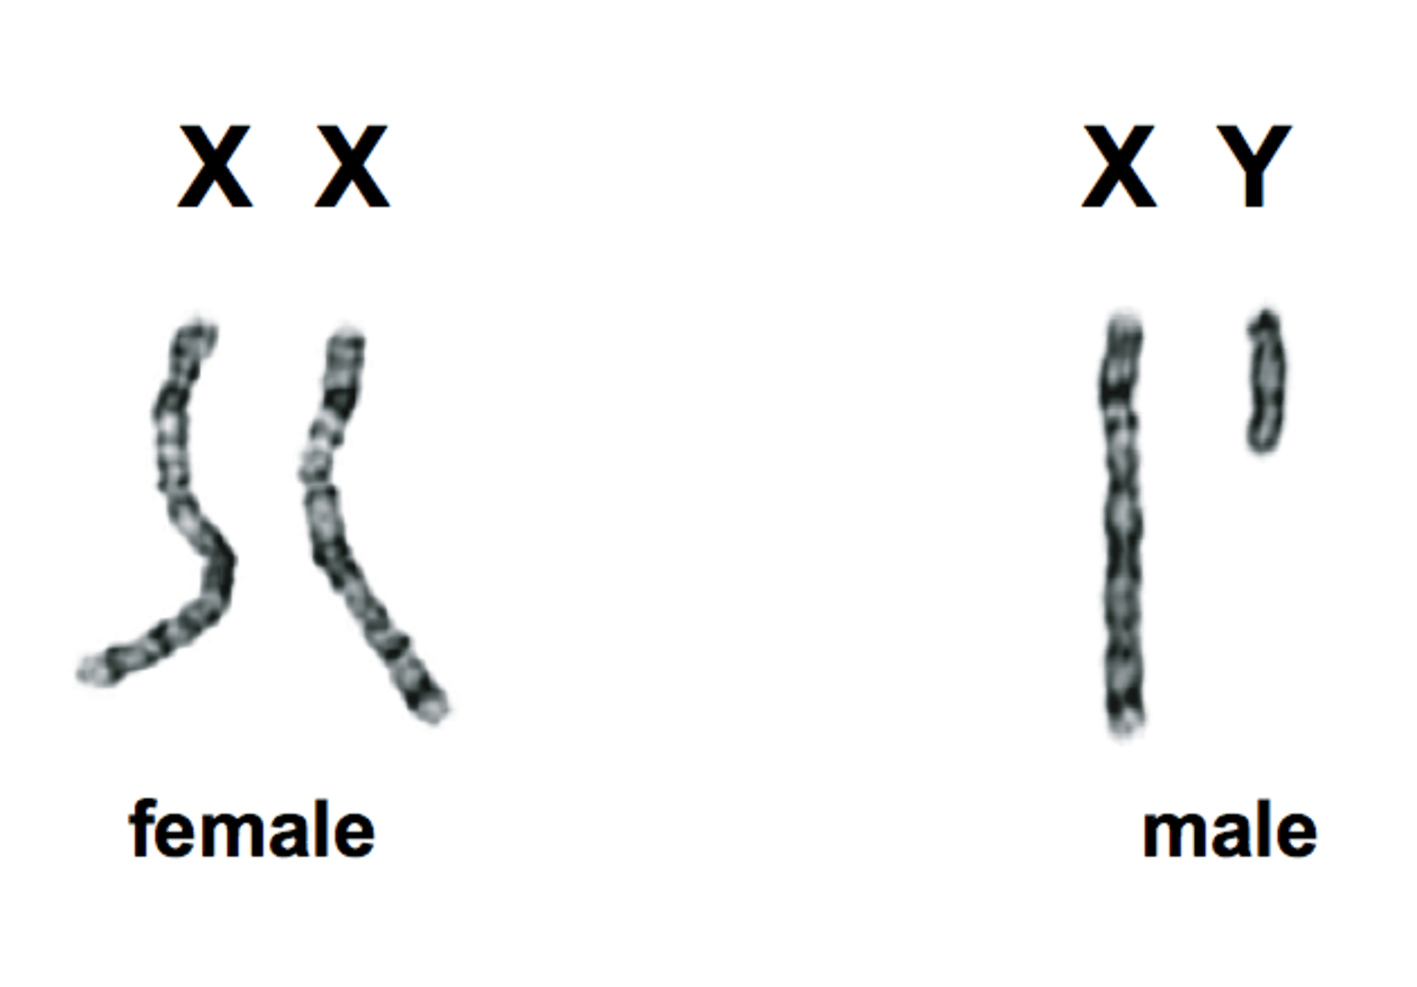 Chromosomes used by doctors to assign gender at birth.